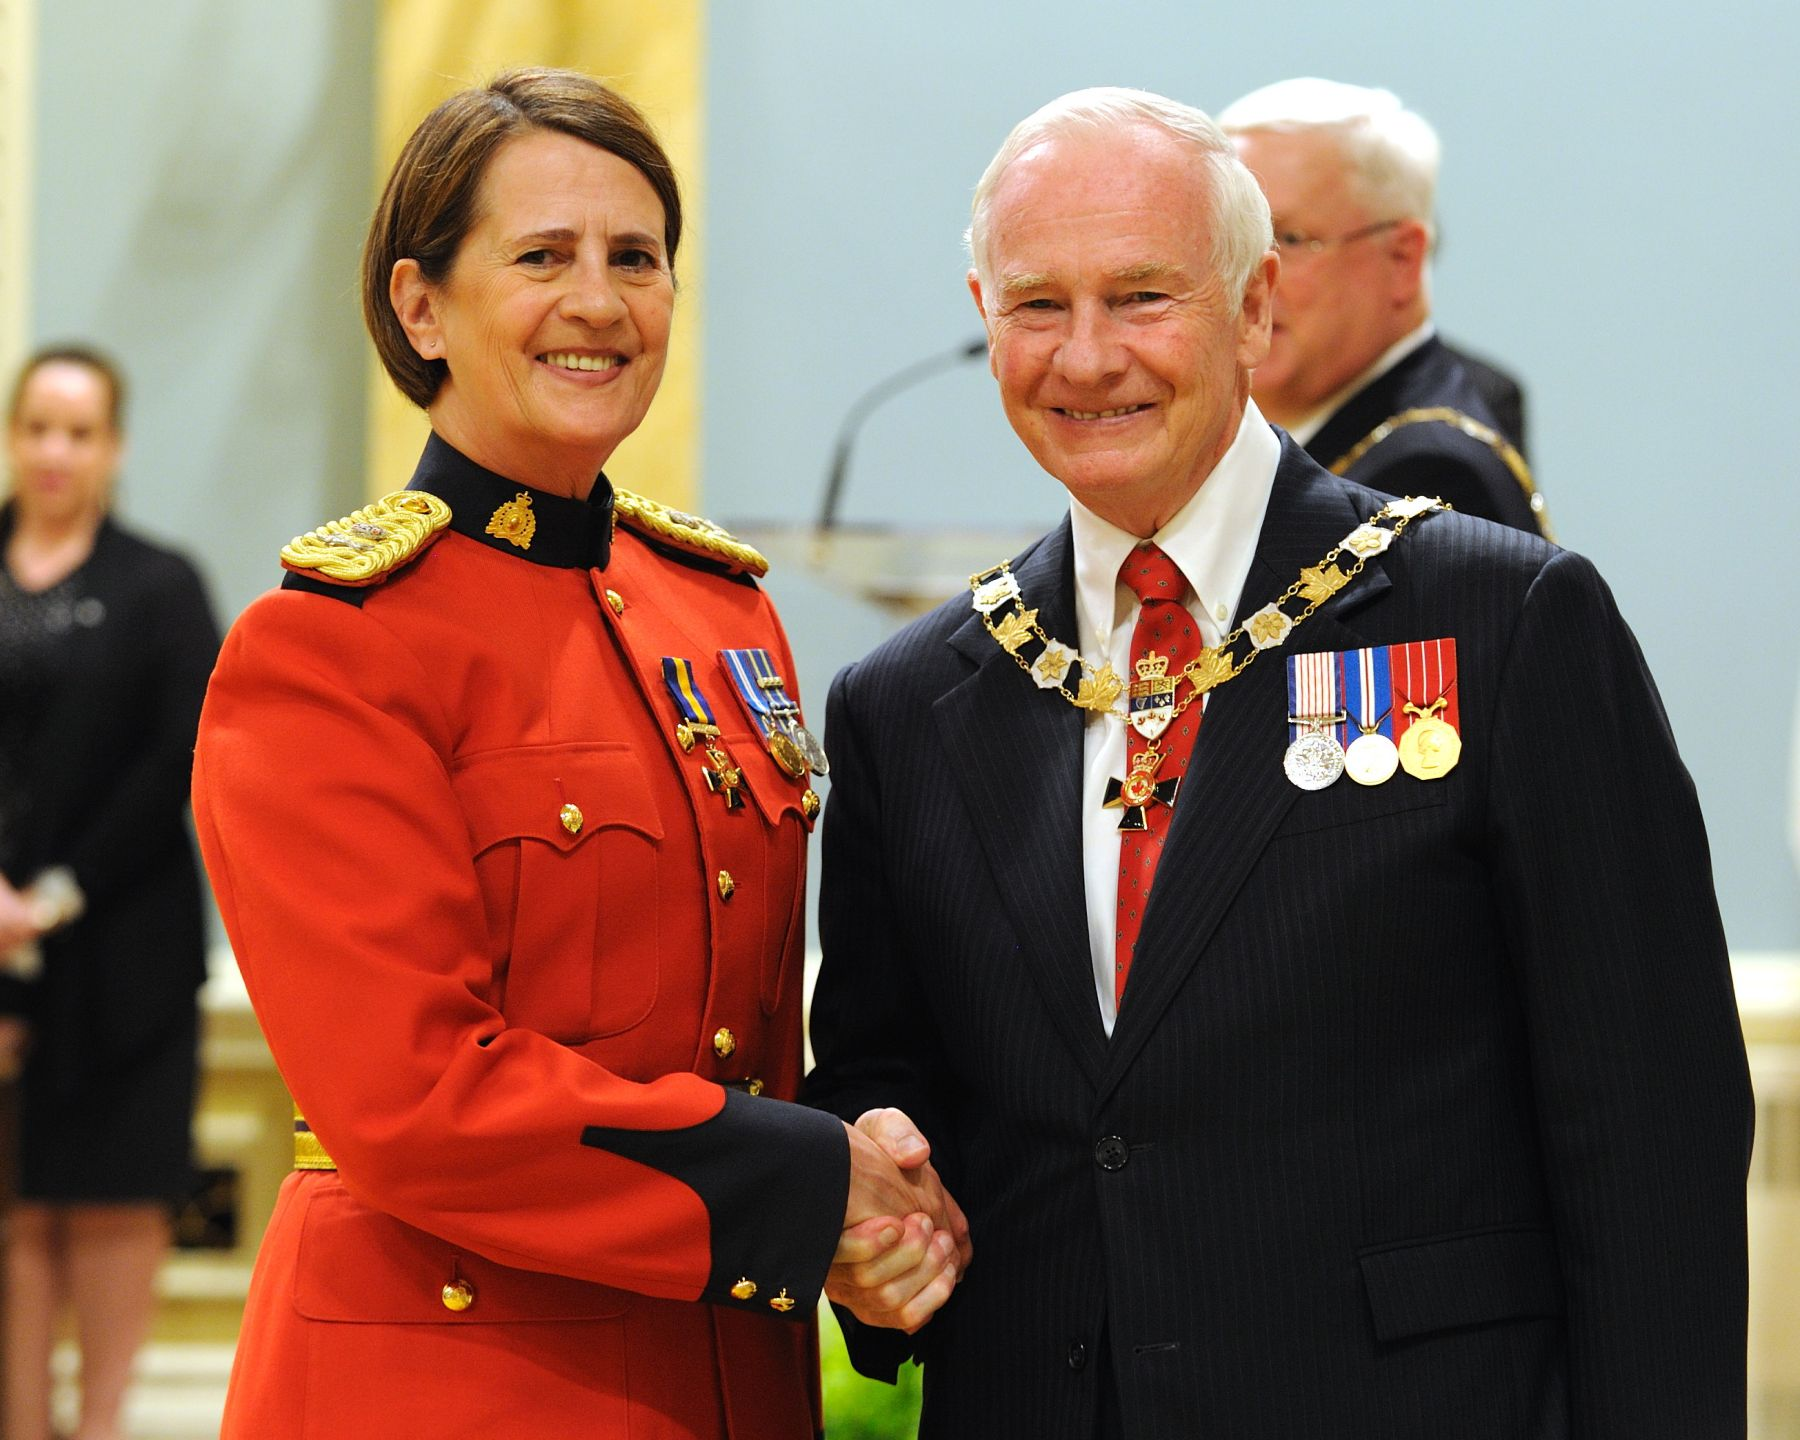 His Excellency presented the Order of Merit of the Police Forces at the Officer level (O.O.M.) to Assistant Commissioner Line Carbonneau, O.O.M., of the Royal Canadian Mounted Police, Westmount, Quebec.